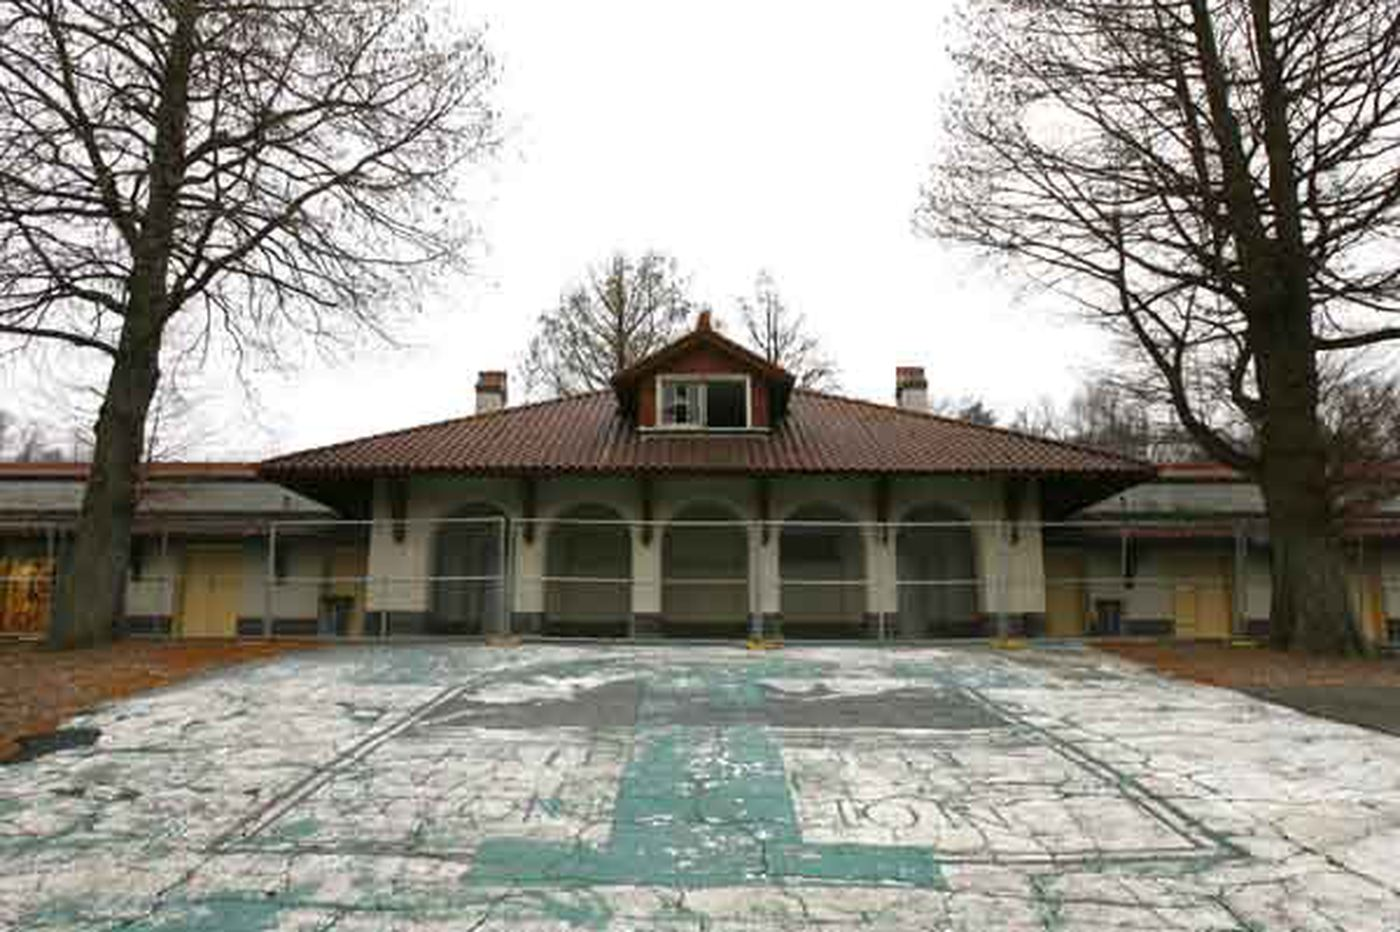 Temple cancels plan for Schuylkill boathouse